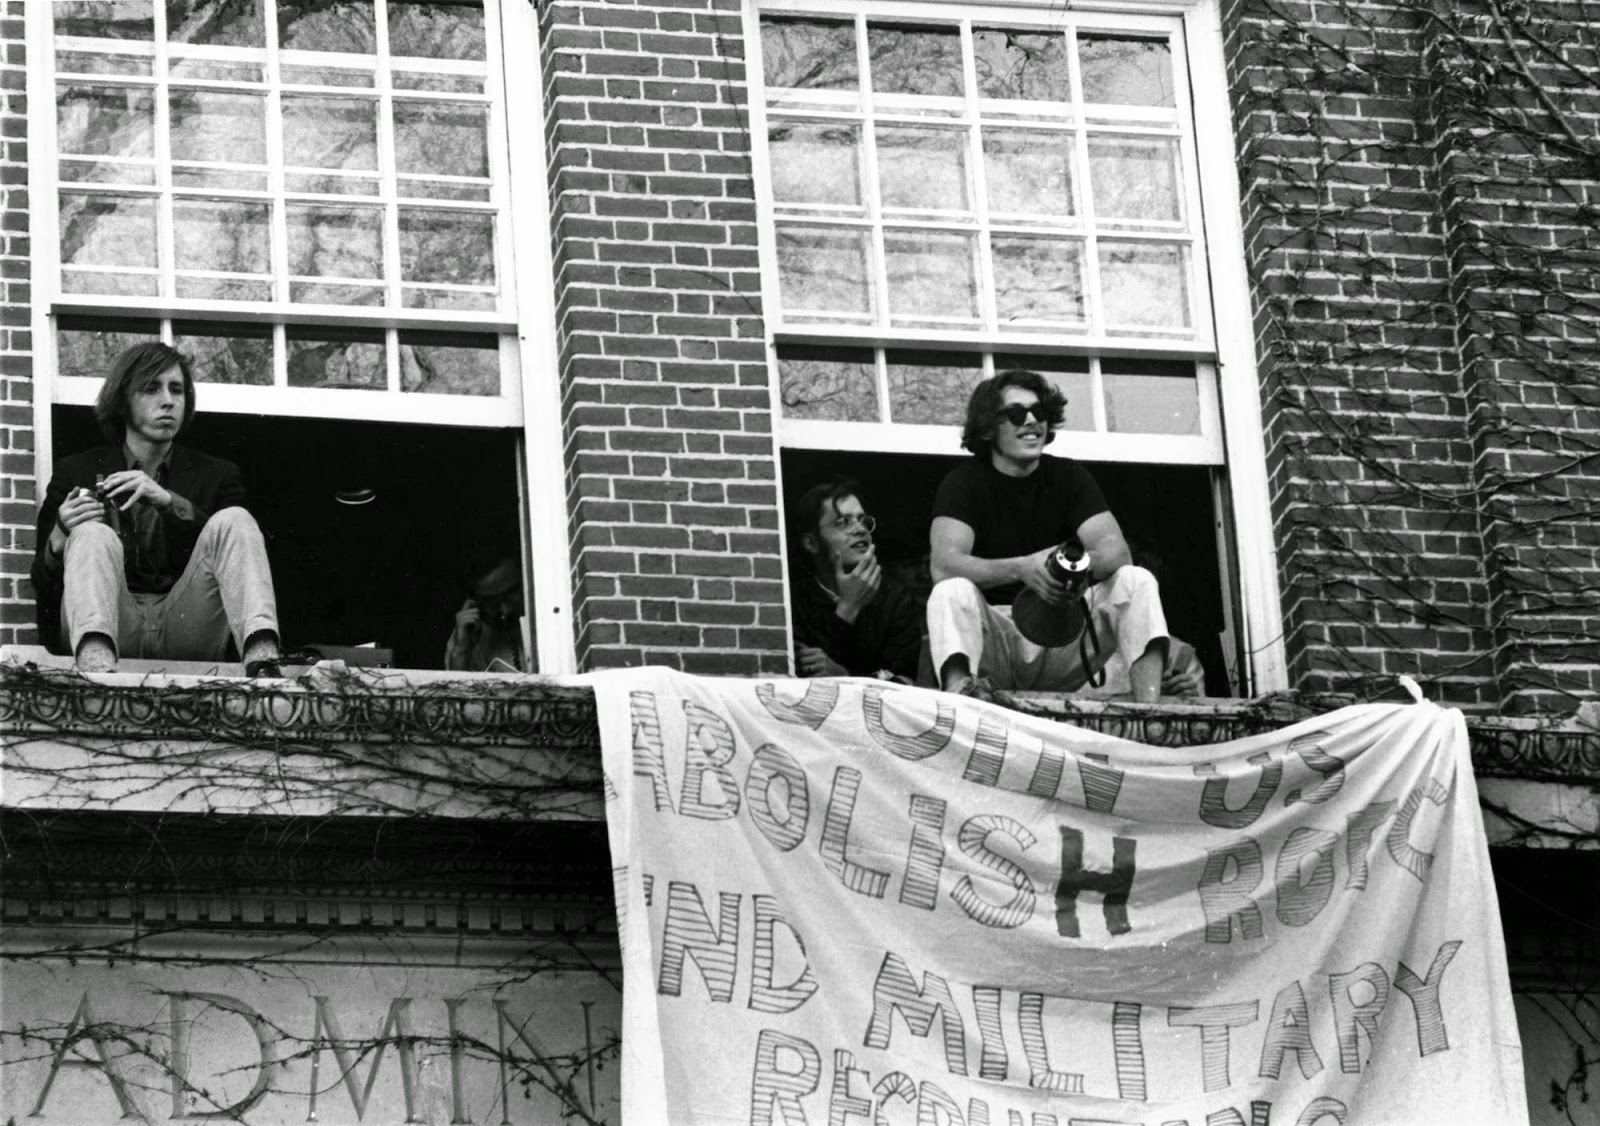 A photograph of students perched in open windows from which a hand-made banner hangs.